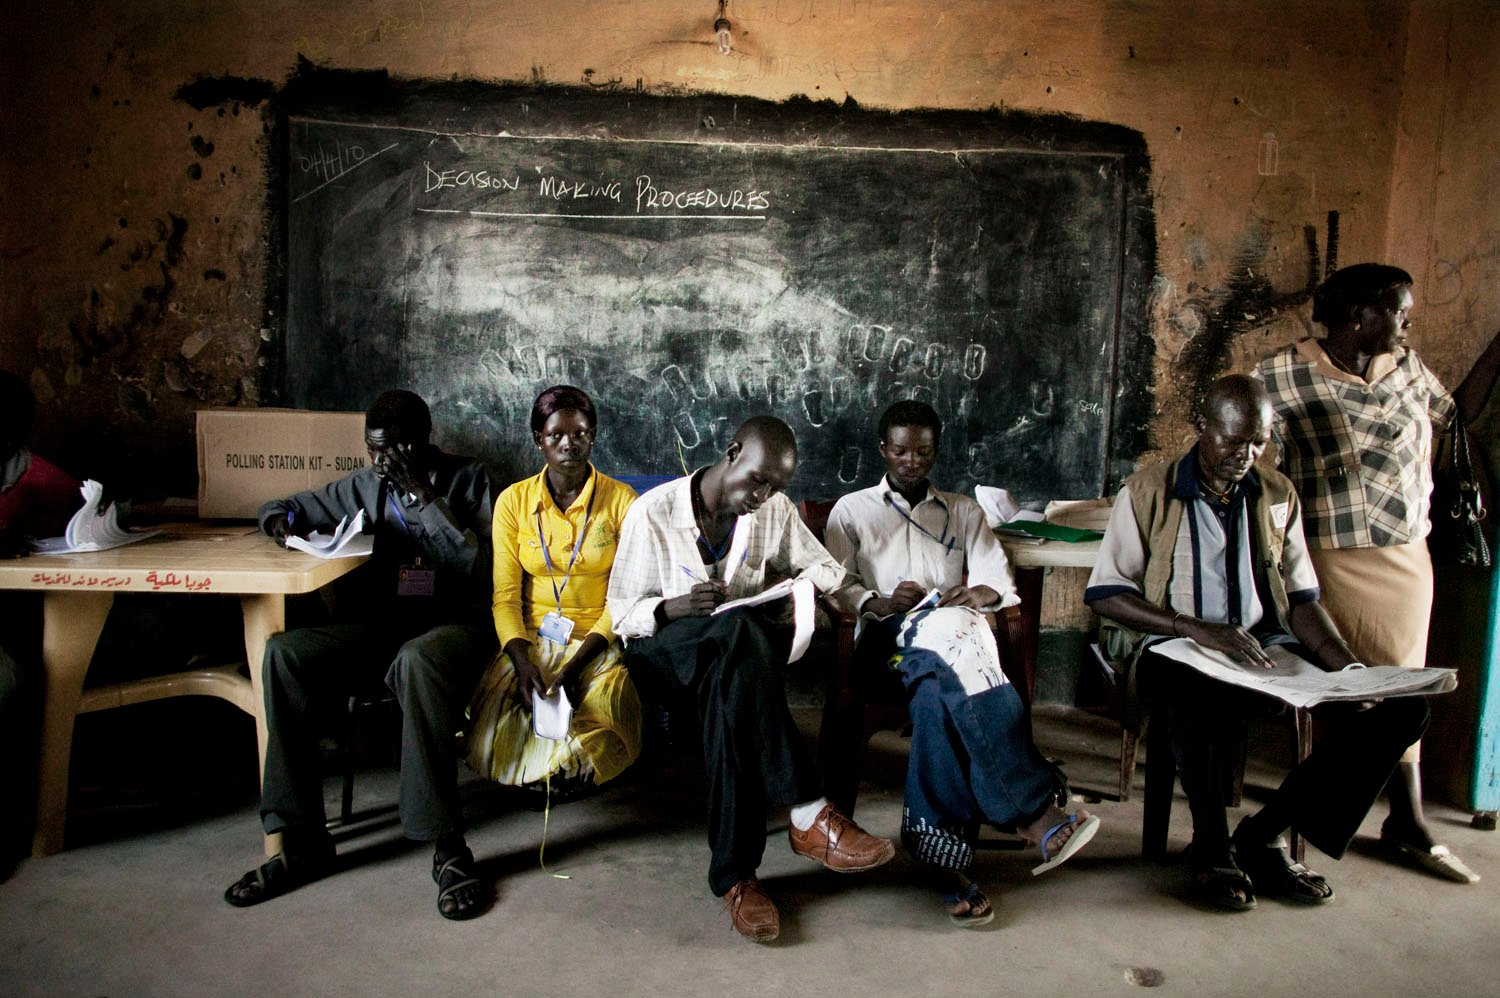 Southern Sudanese election observers and political party agents sit inside a polling station in Juba, southern Sudan during the country's historic presidential, parliamentary and gubernatorial elections in April 2010. The elections were the first to take place in Sudan since 1986.